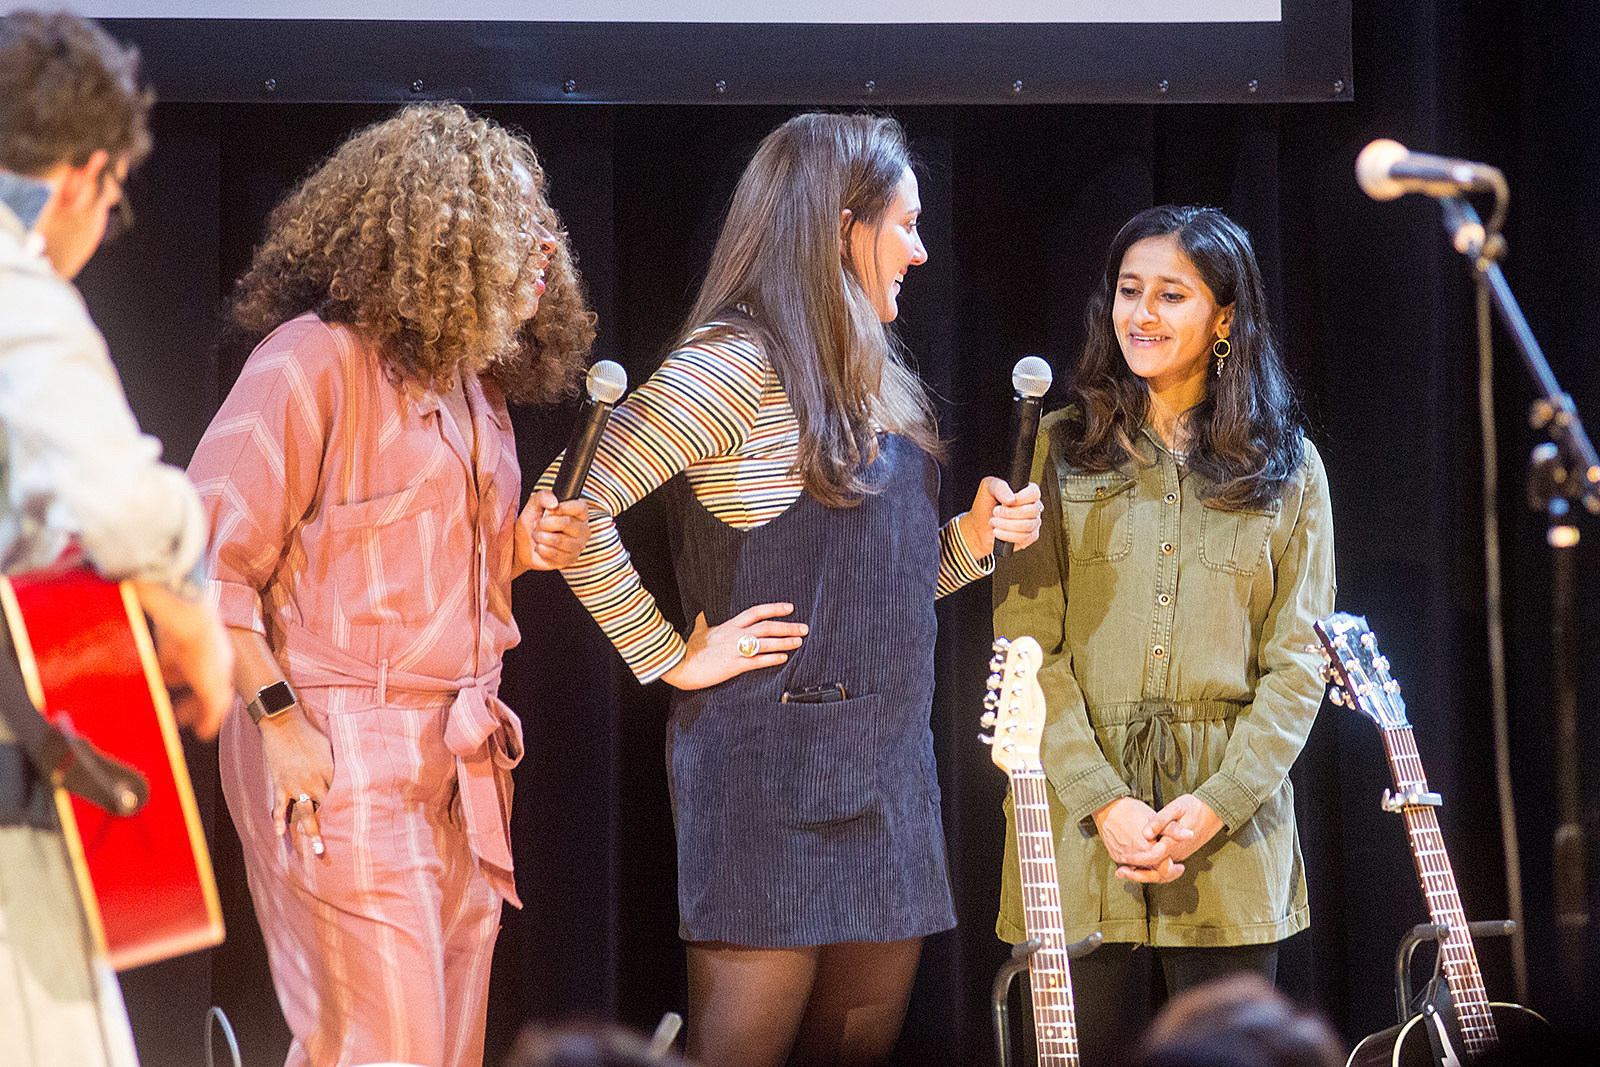 Phoebe Robinson, Jacqueline Novak, and Aparna Nancherla @ 2018 Ally Coalition Talent Show